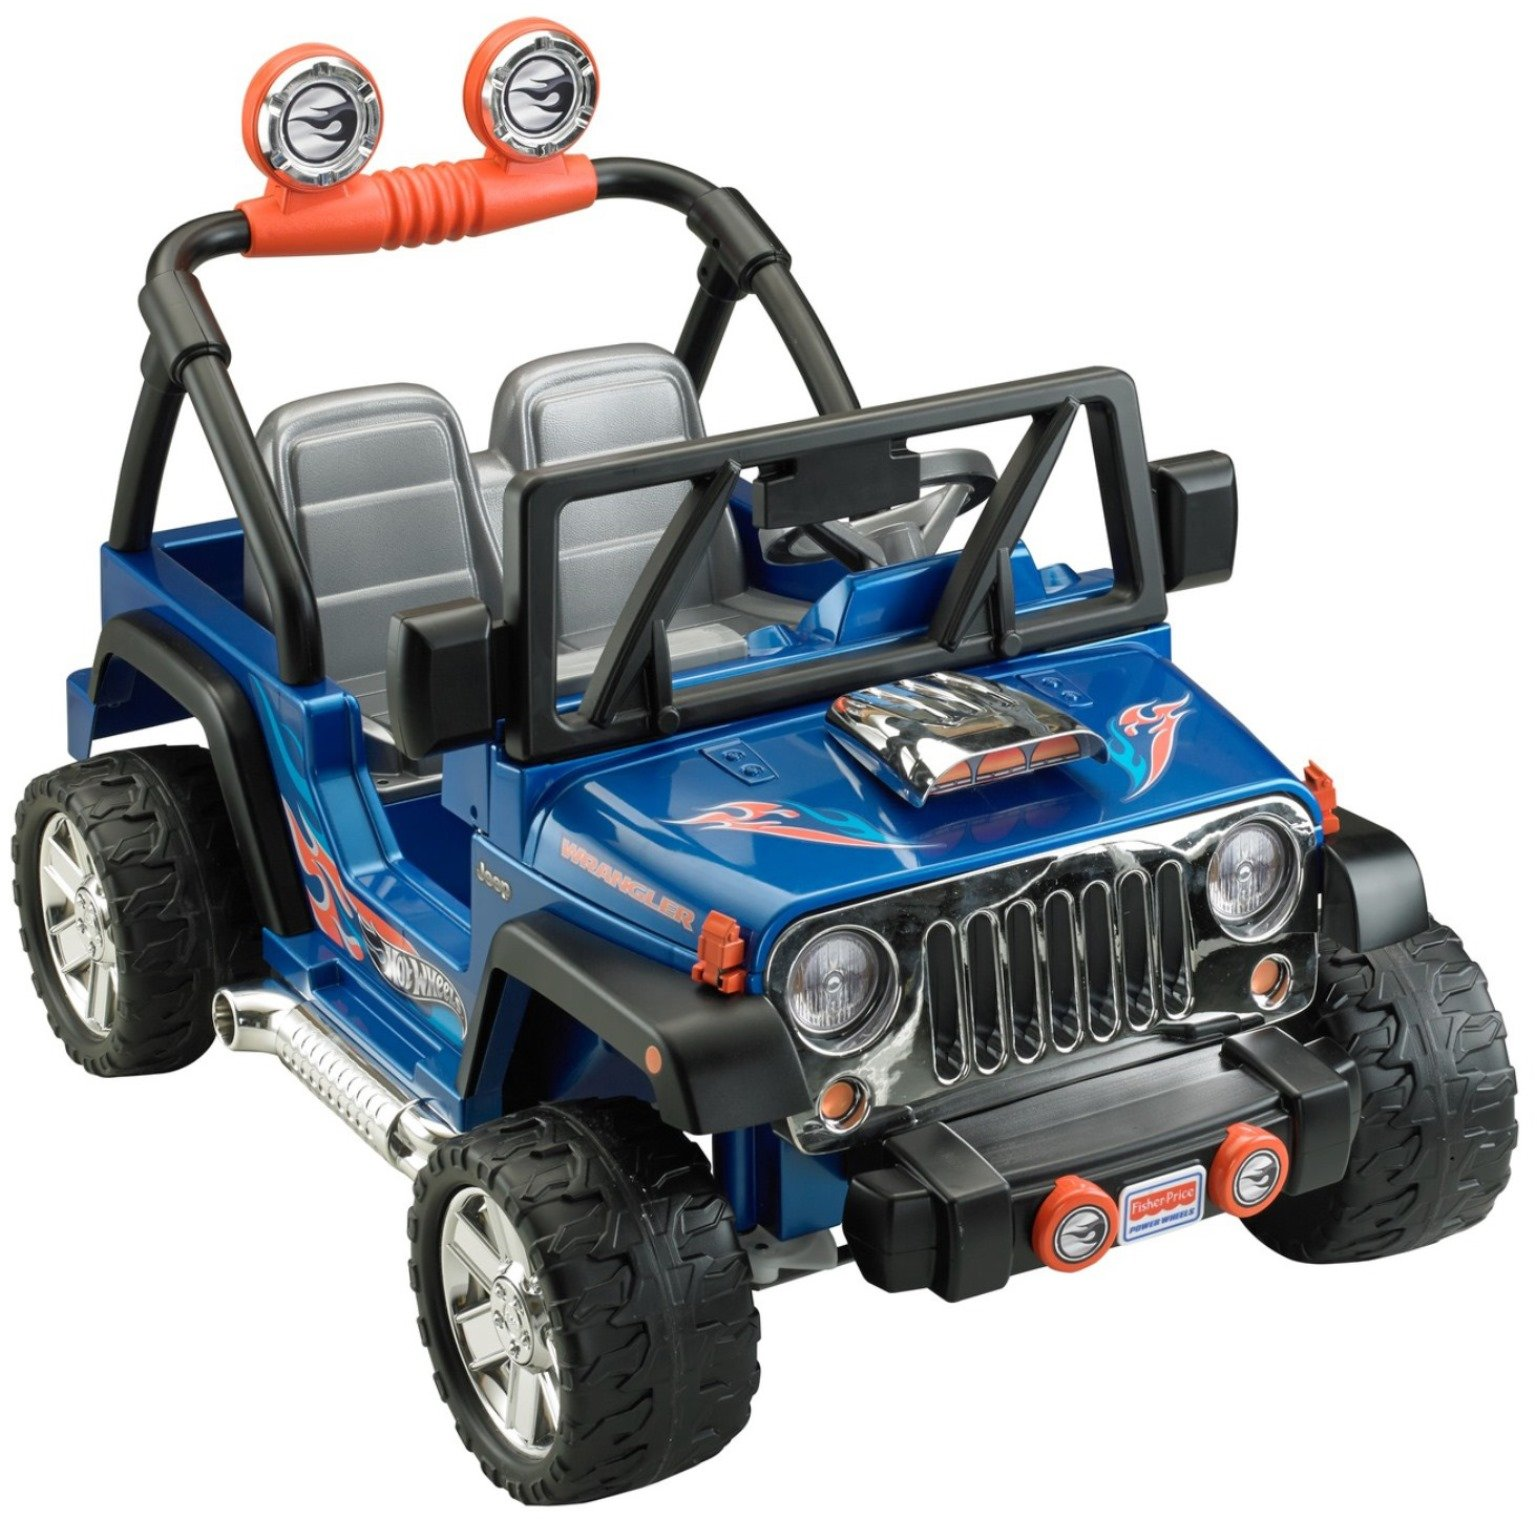 Power Wheels Hot Wheels Jeep Wrangler, Blue (12V) by Power Wheels (Image #1)